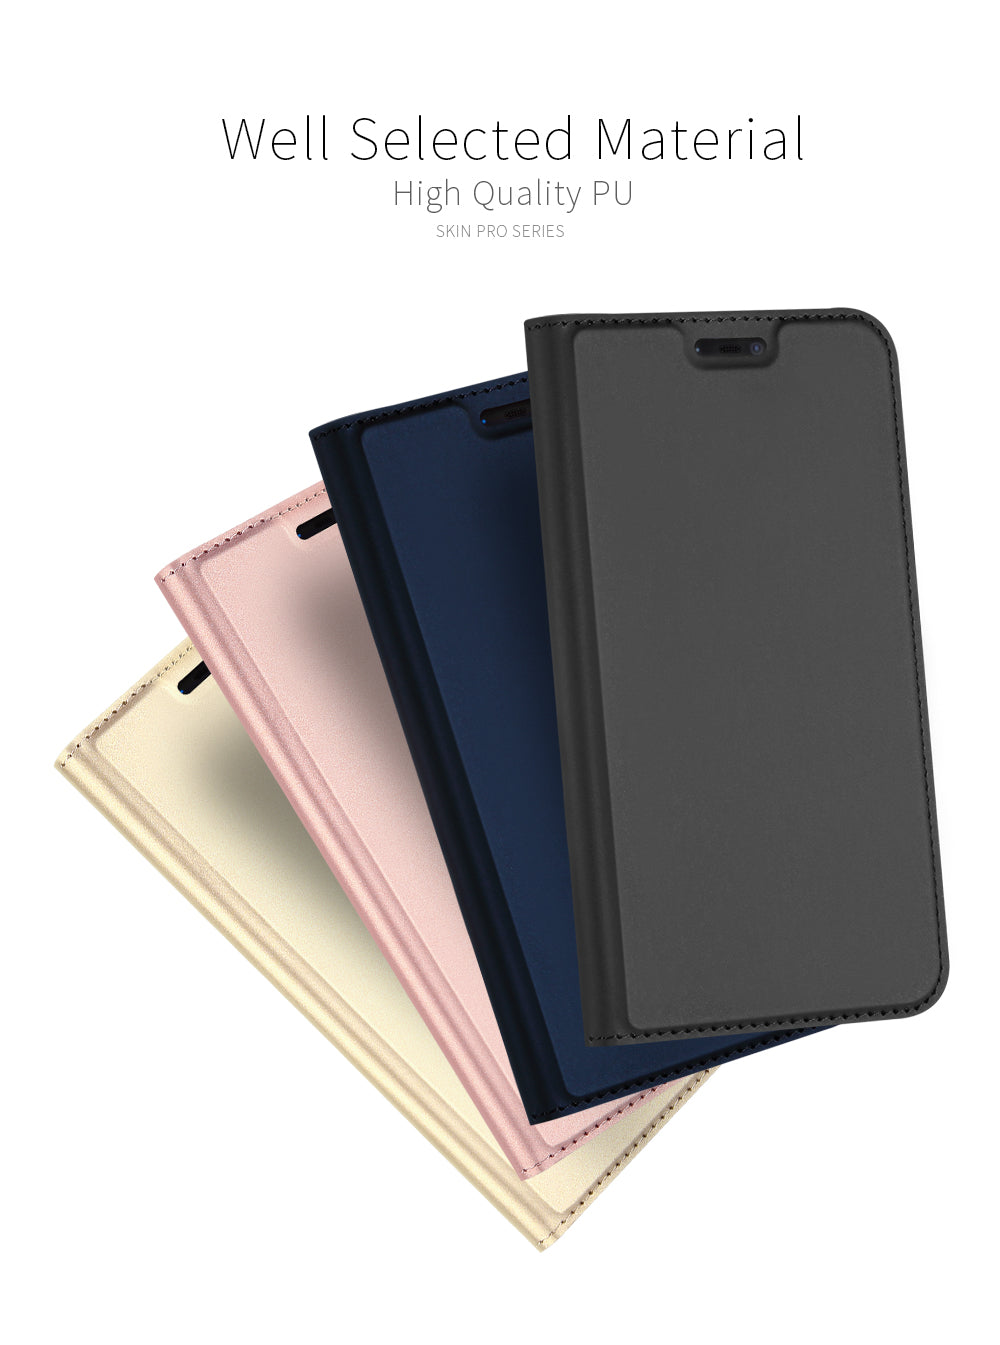 Luxury Smooth Leather Touch Wallet Flip Case Cover for OnePlus 6 / One Plus 6